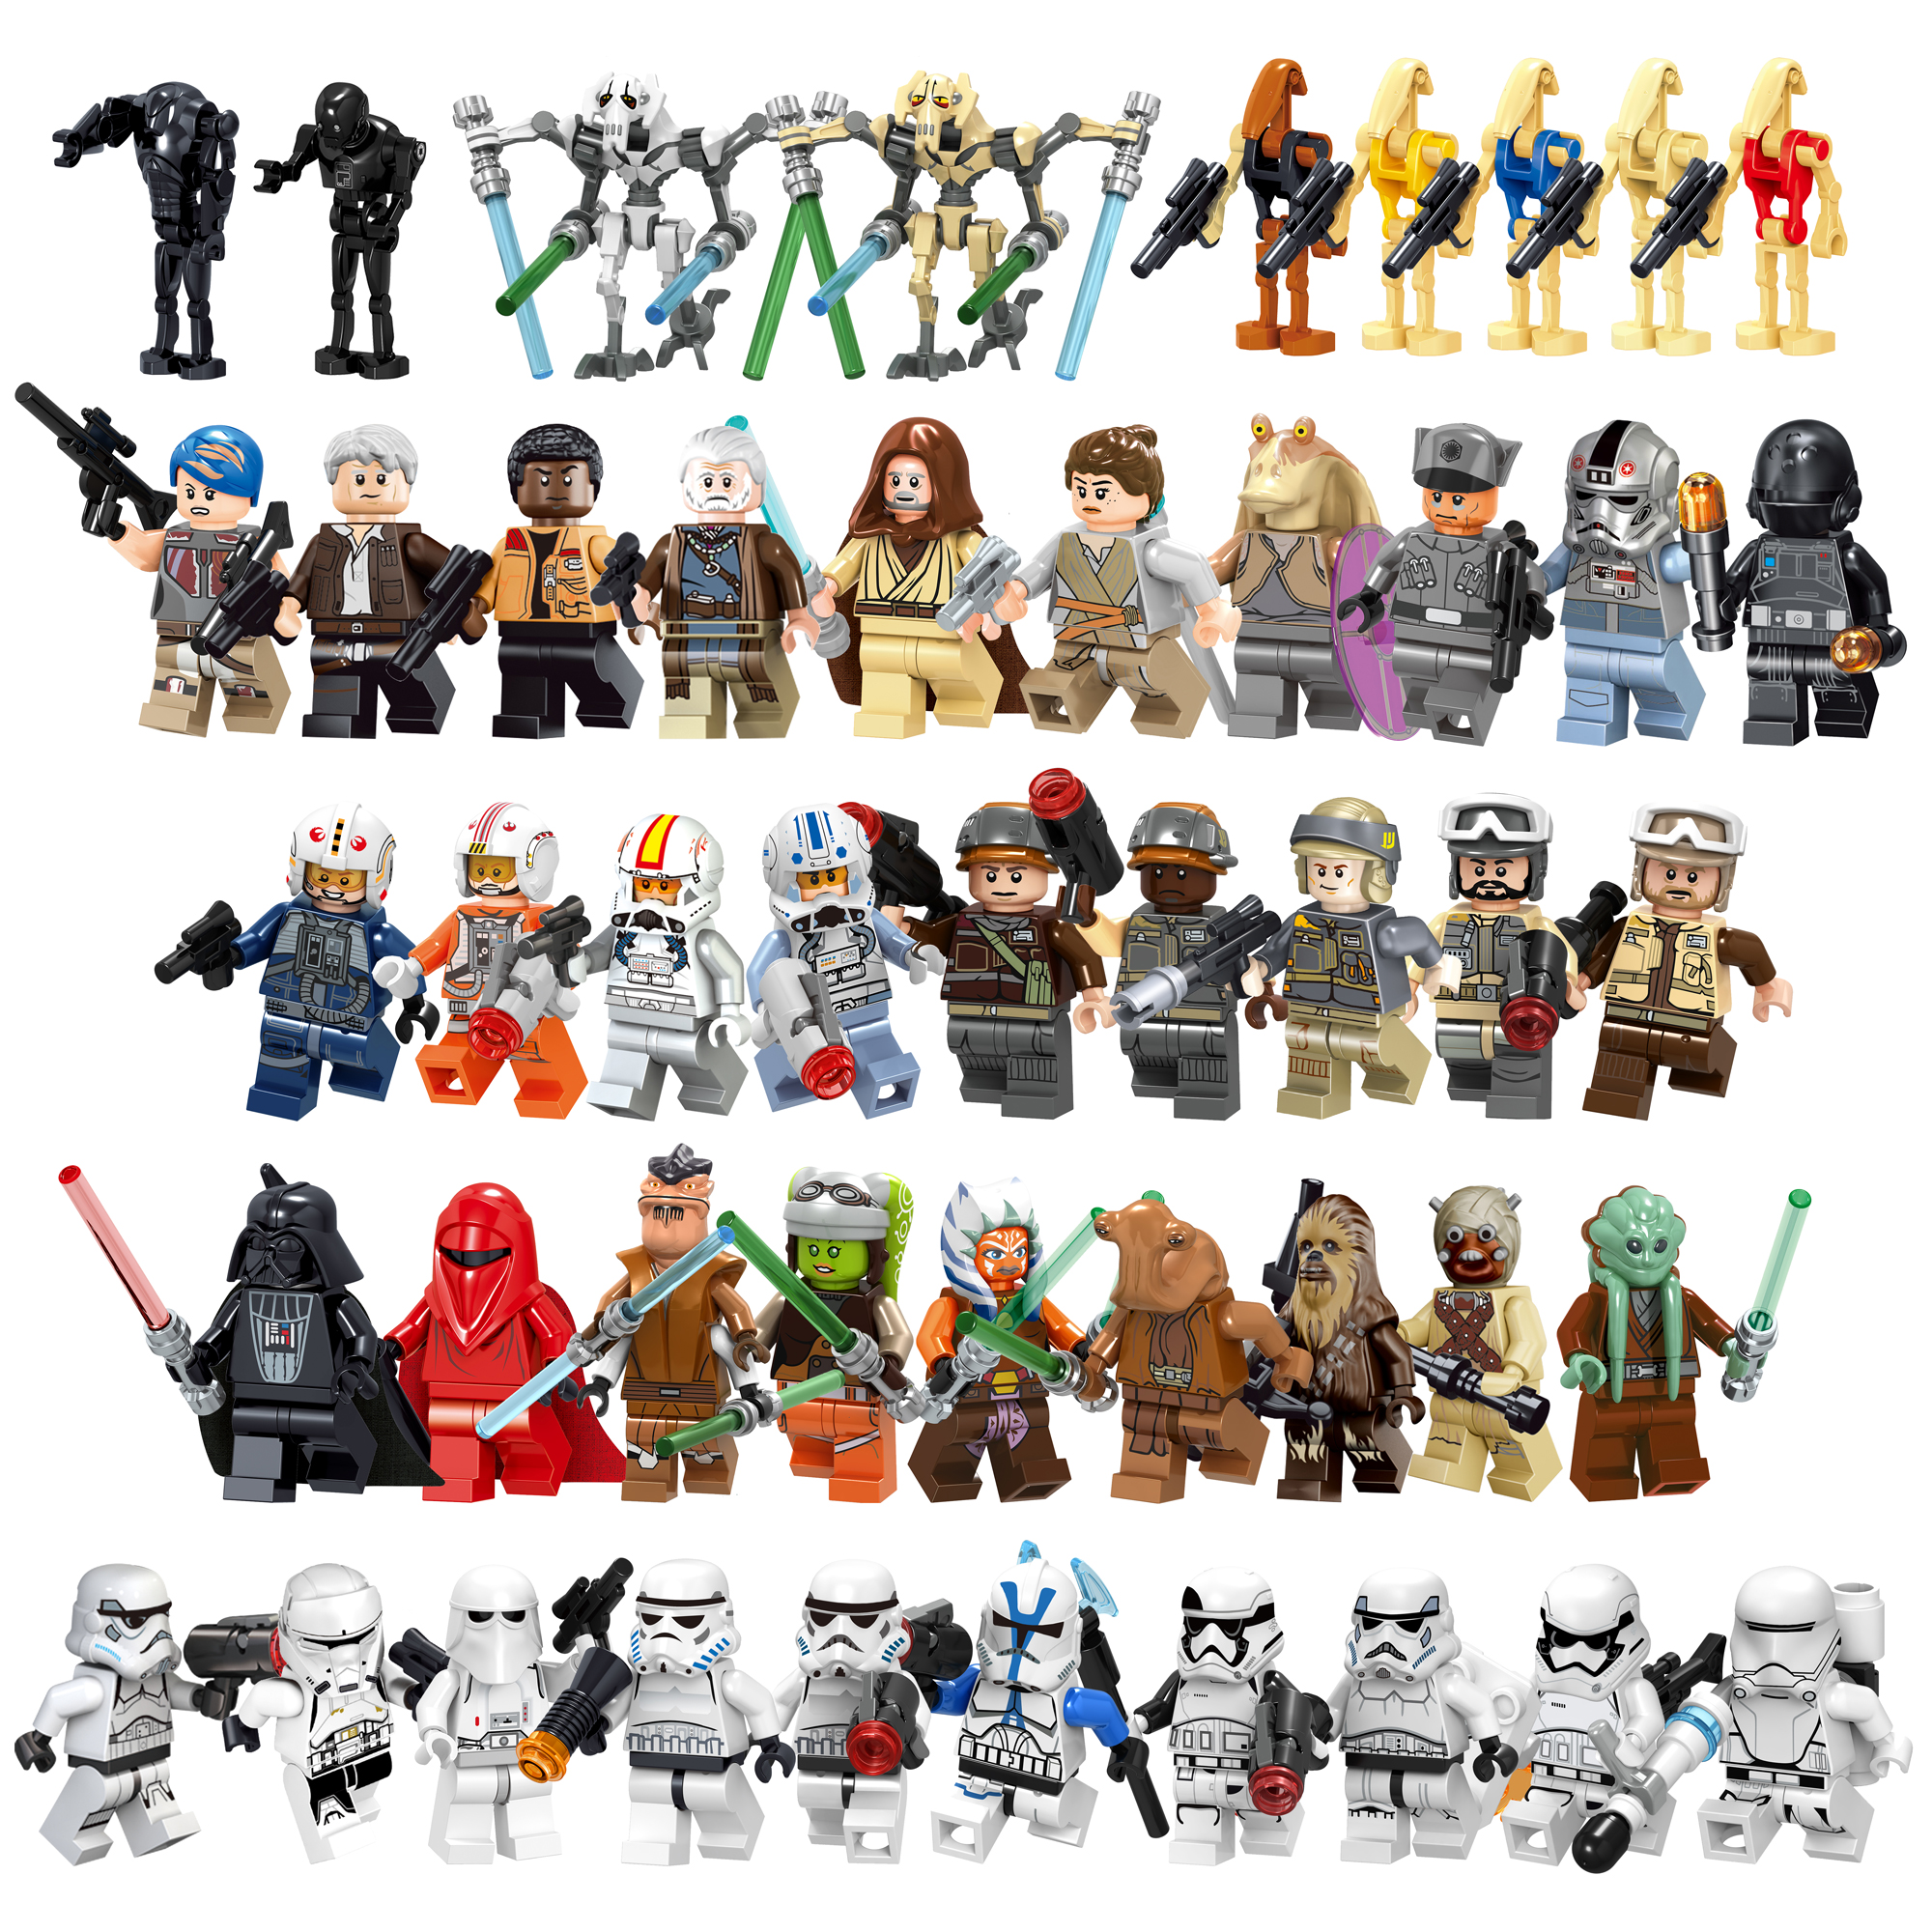 Movie Figures Luke Leia Trooper Han Solo Maz Anakin Darth Vader Yoda Obi Wan Weapon Figure Building Blocks Toys For Children